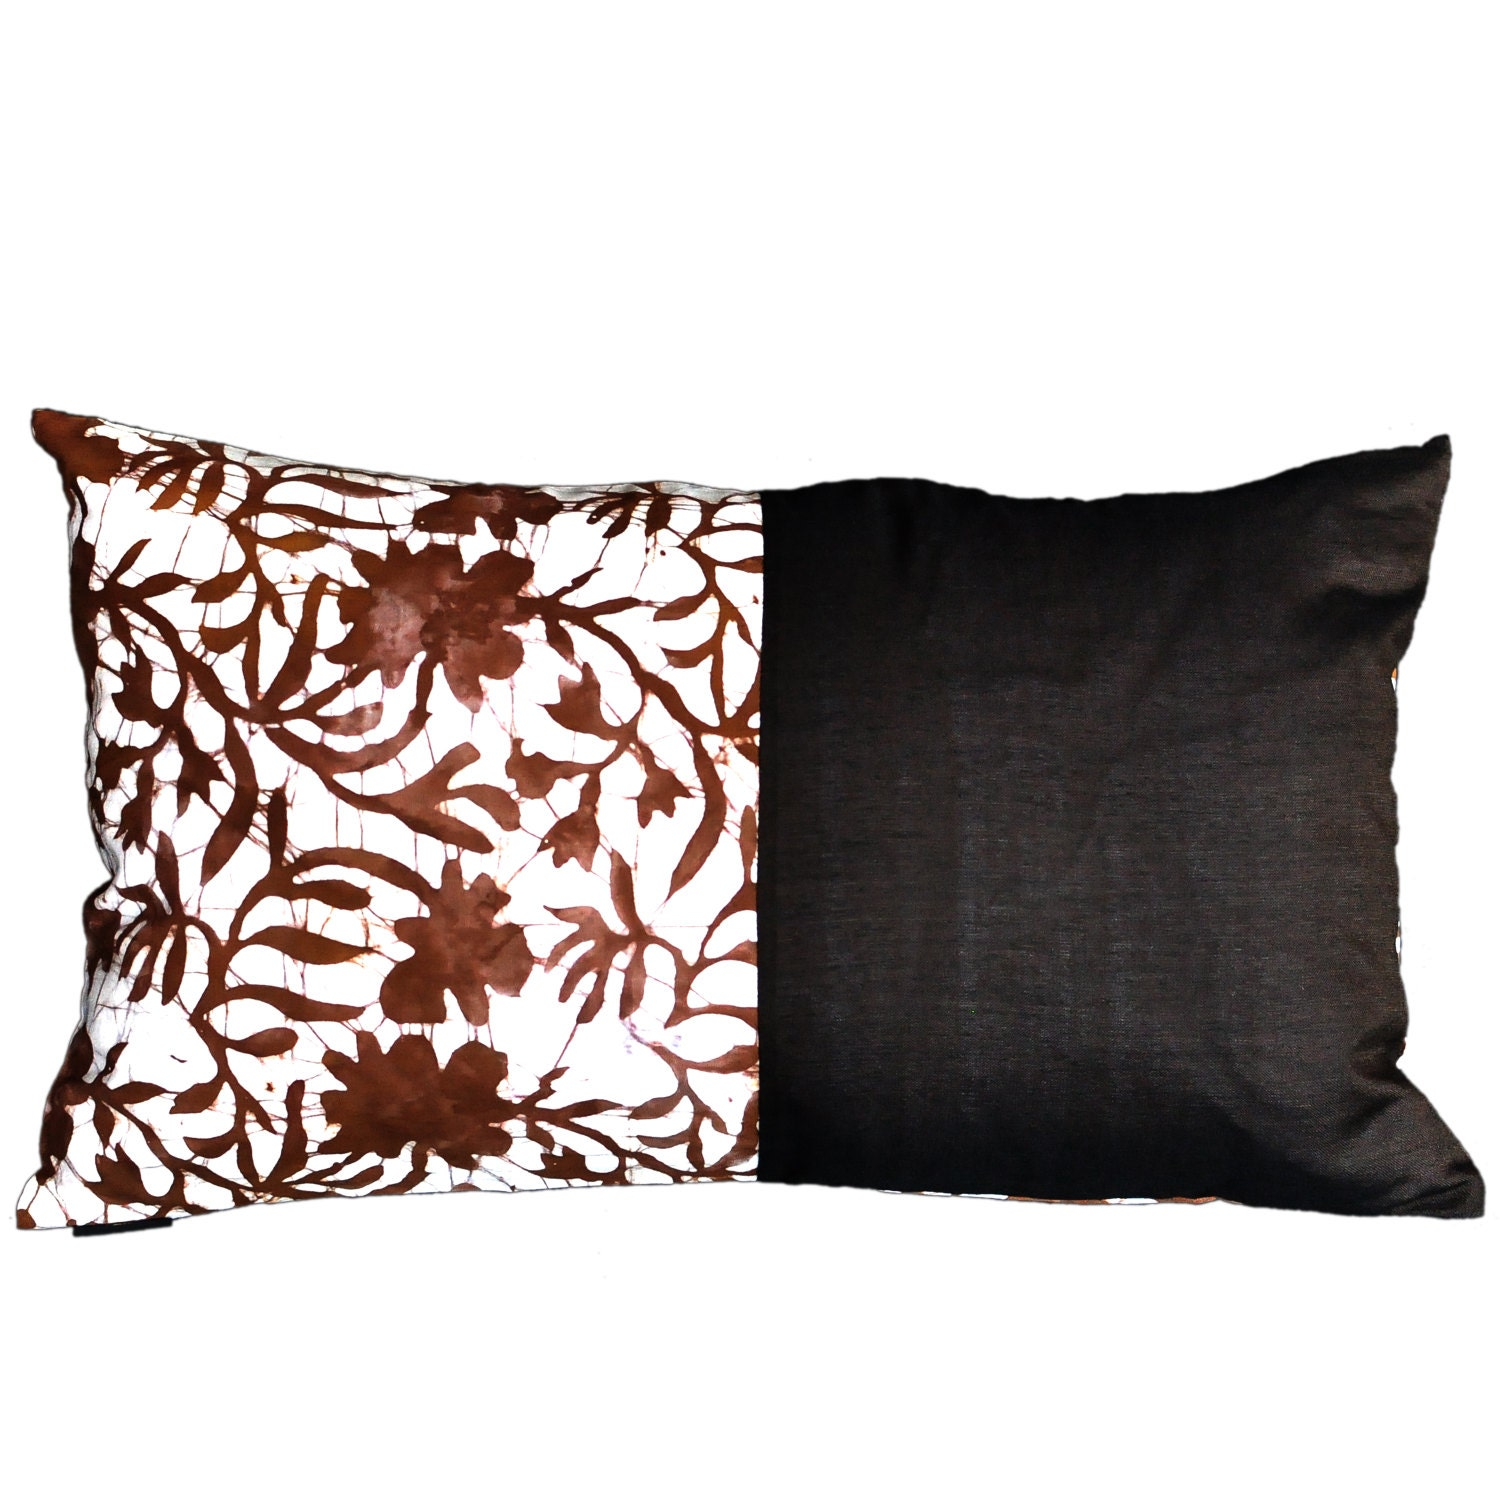 batik kissenbezug gardenia motiv braun 50 x 30. Black Bedroom Furniture Sets. Home Design Ideas